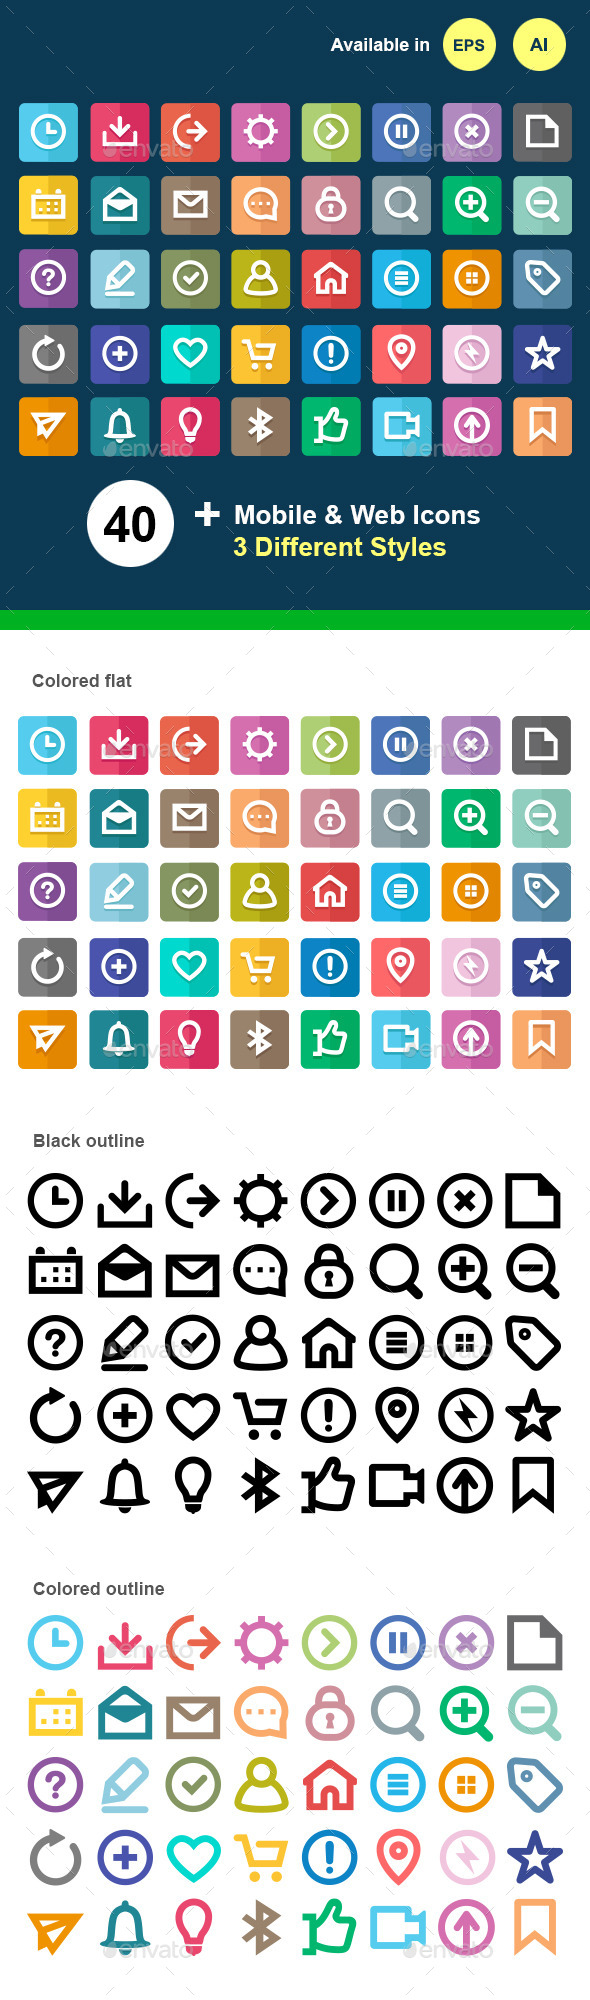 Mobile & Web UI Icons - Technology Icons